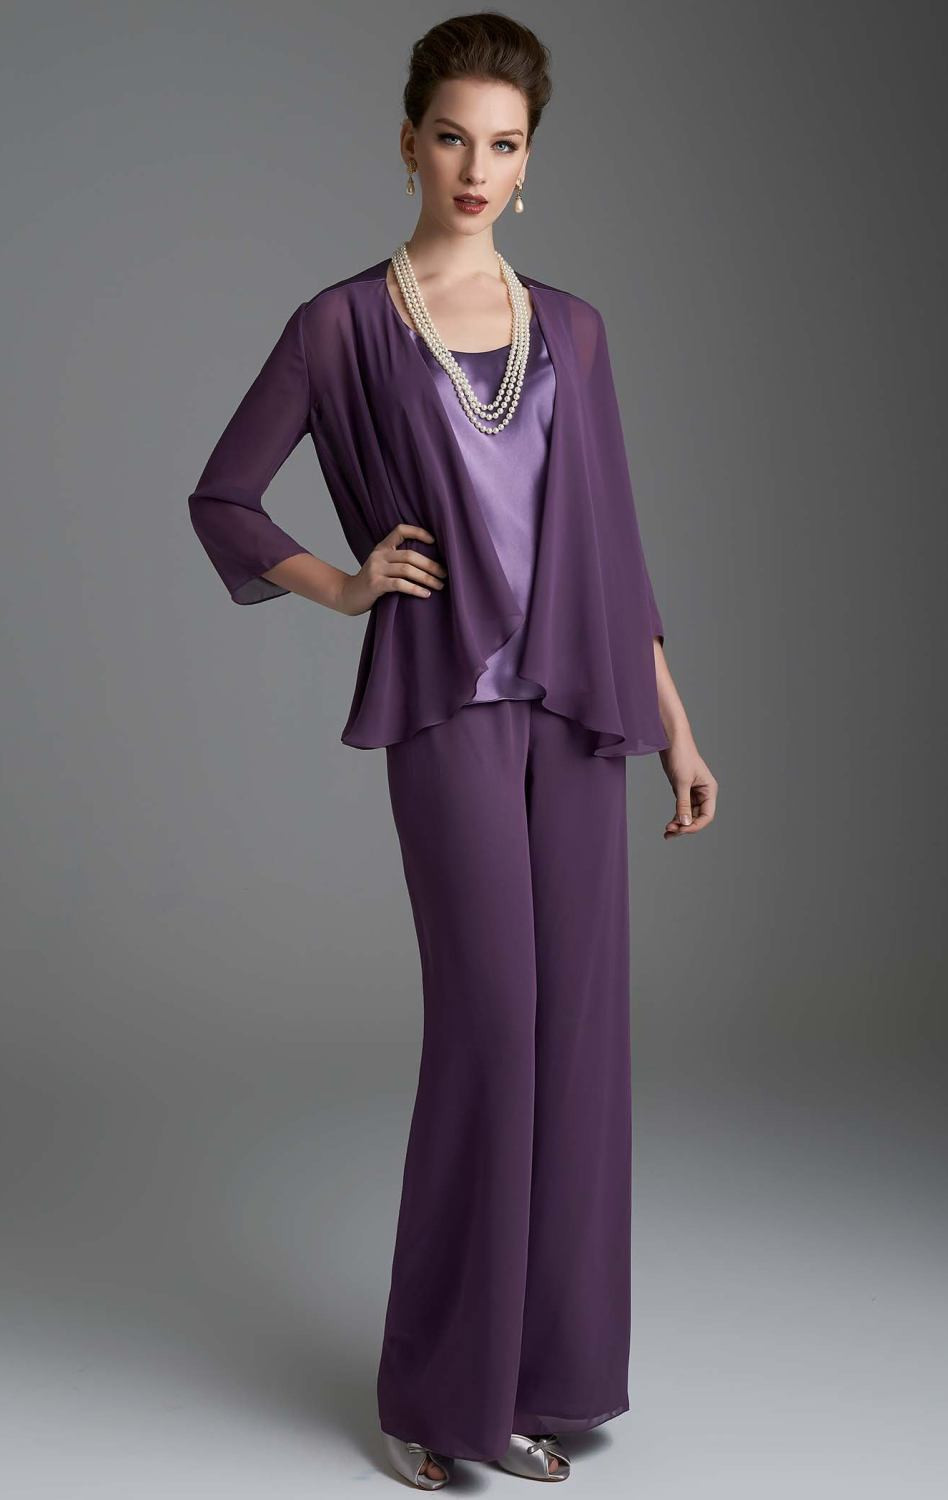 3 Piece Mother of the Bride Pant Suits | Dress images